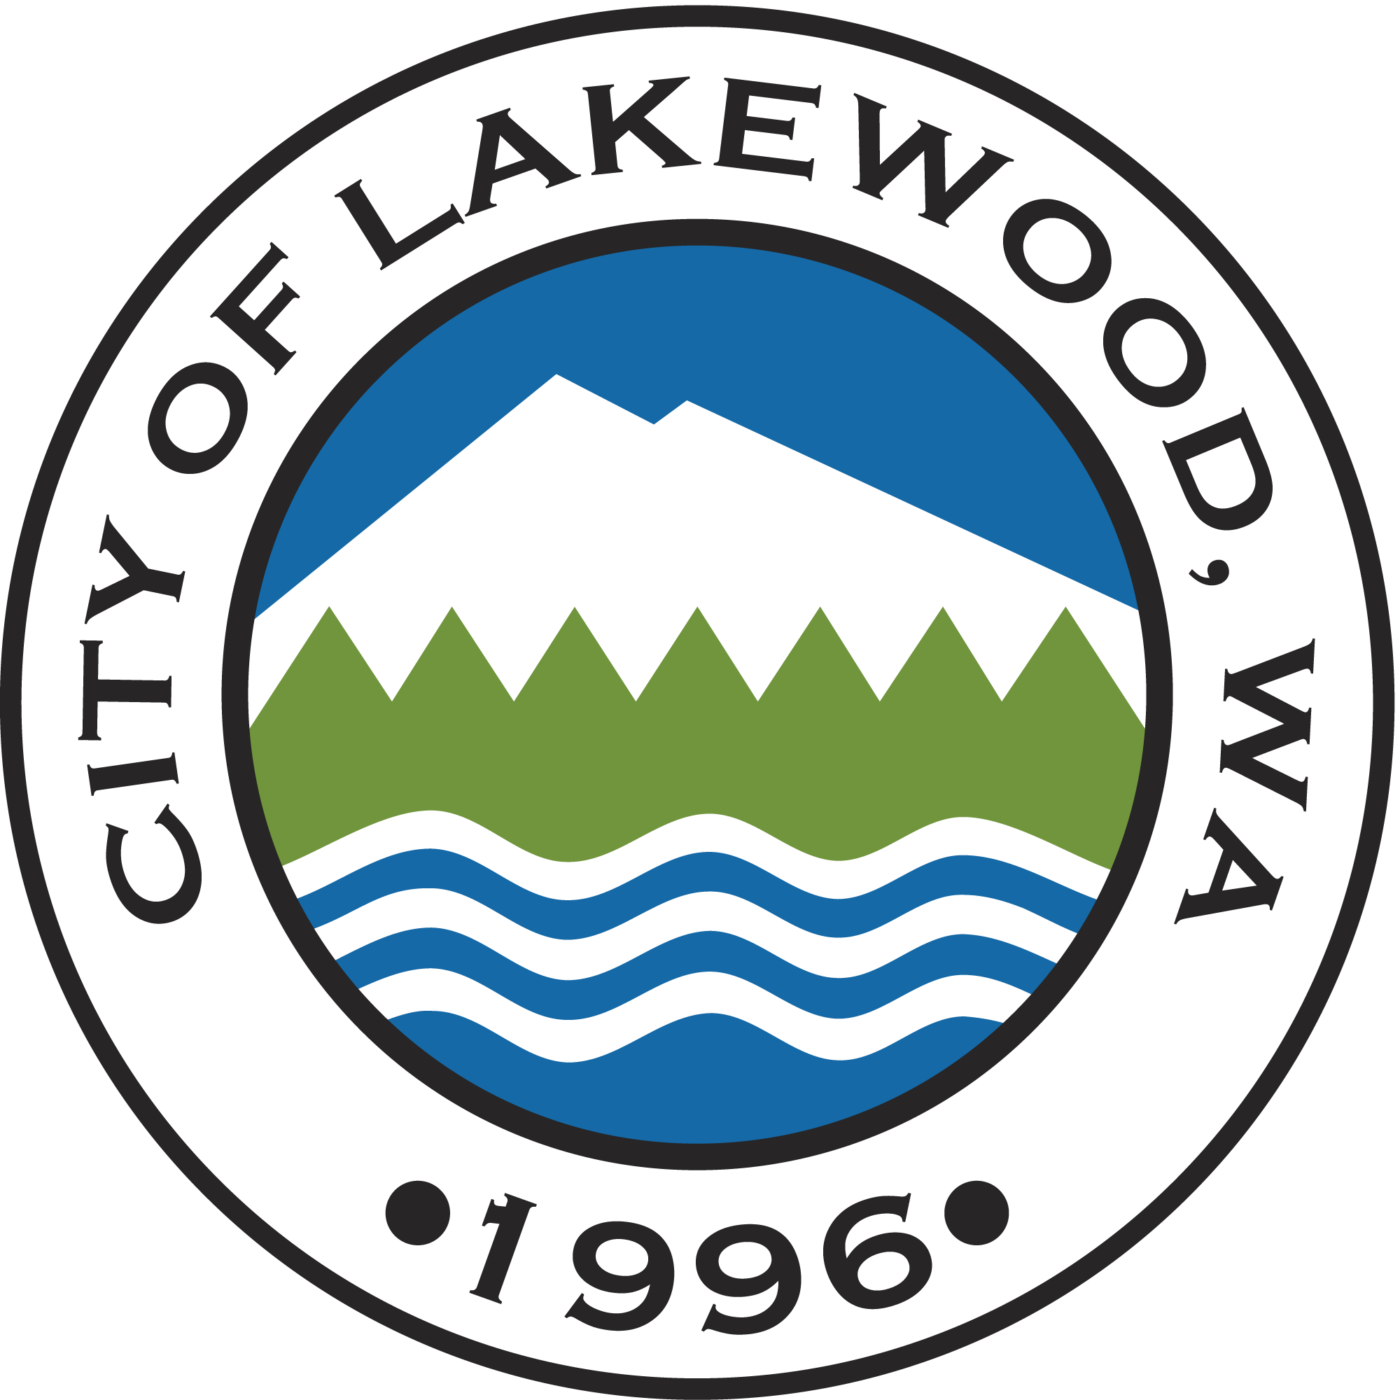 City of Lakewood logo